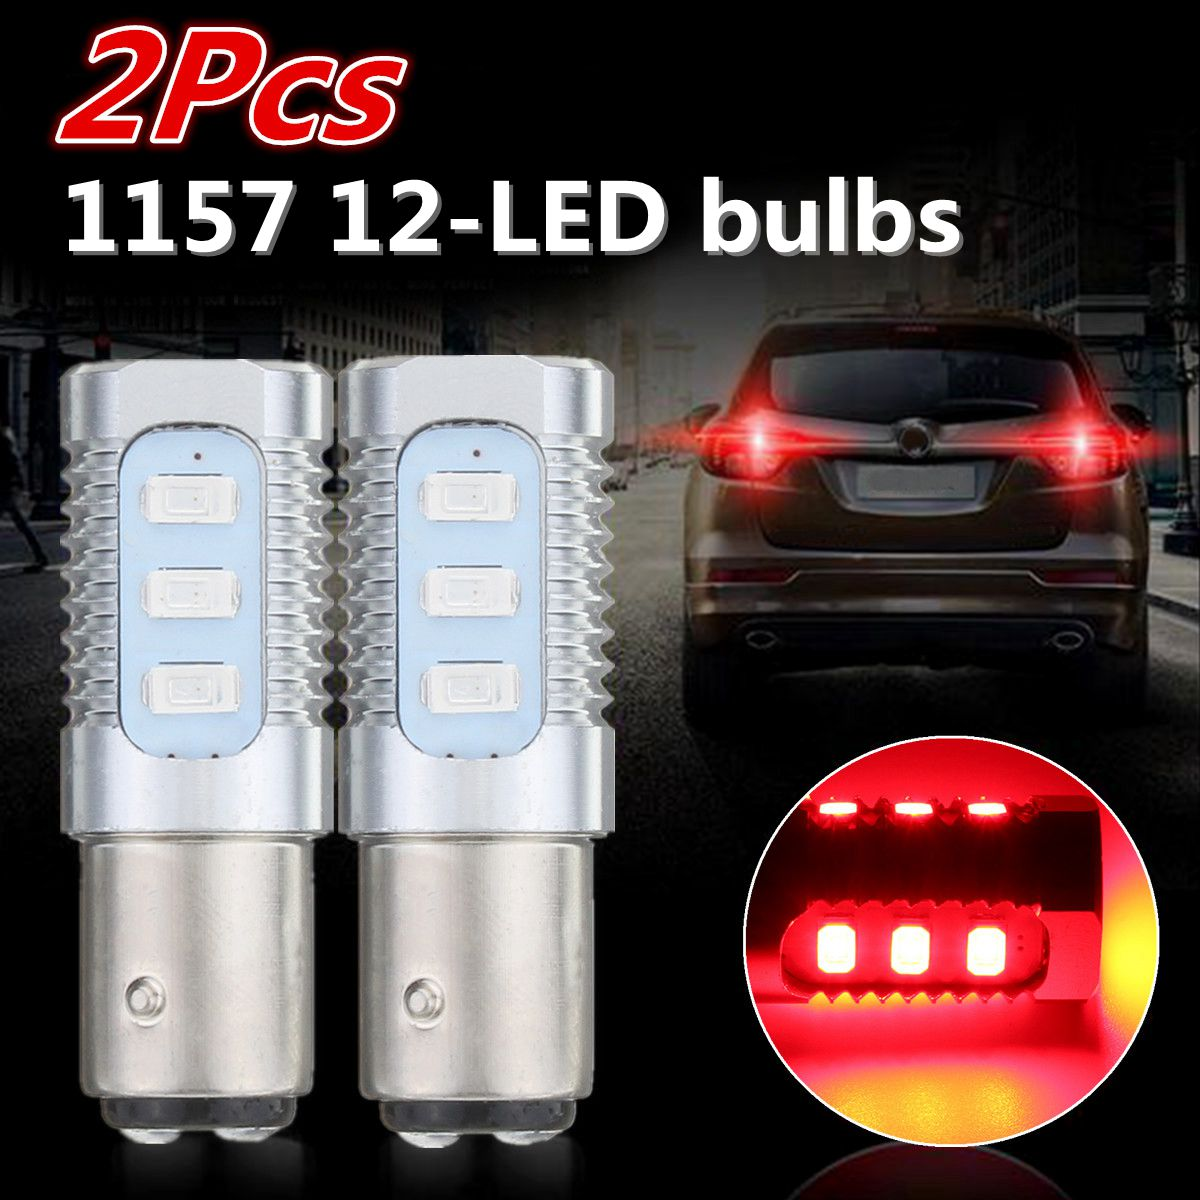 2PCS 1157 LED Flashing Strobe Light Bulb Red Rear Alert Safety Brake Tail Stop Lights Bulb